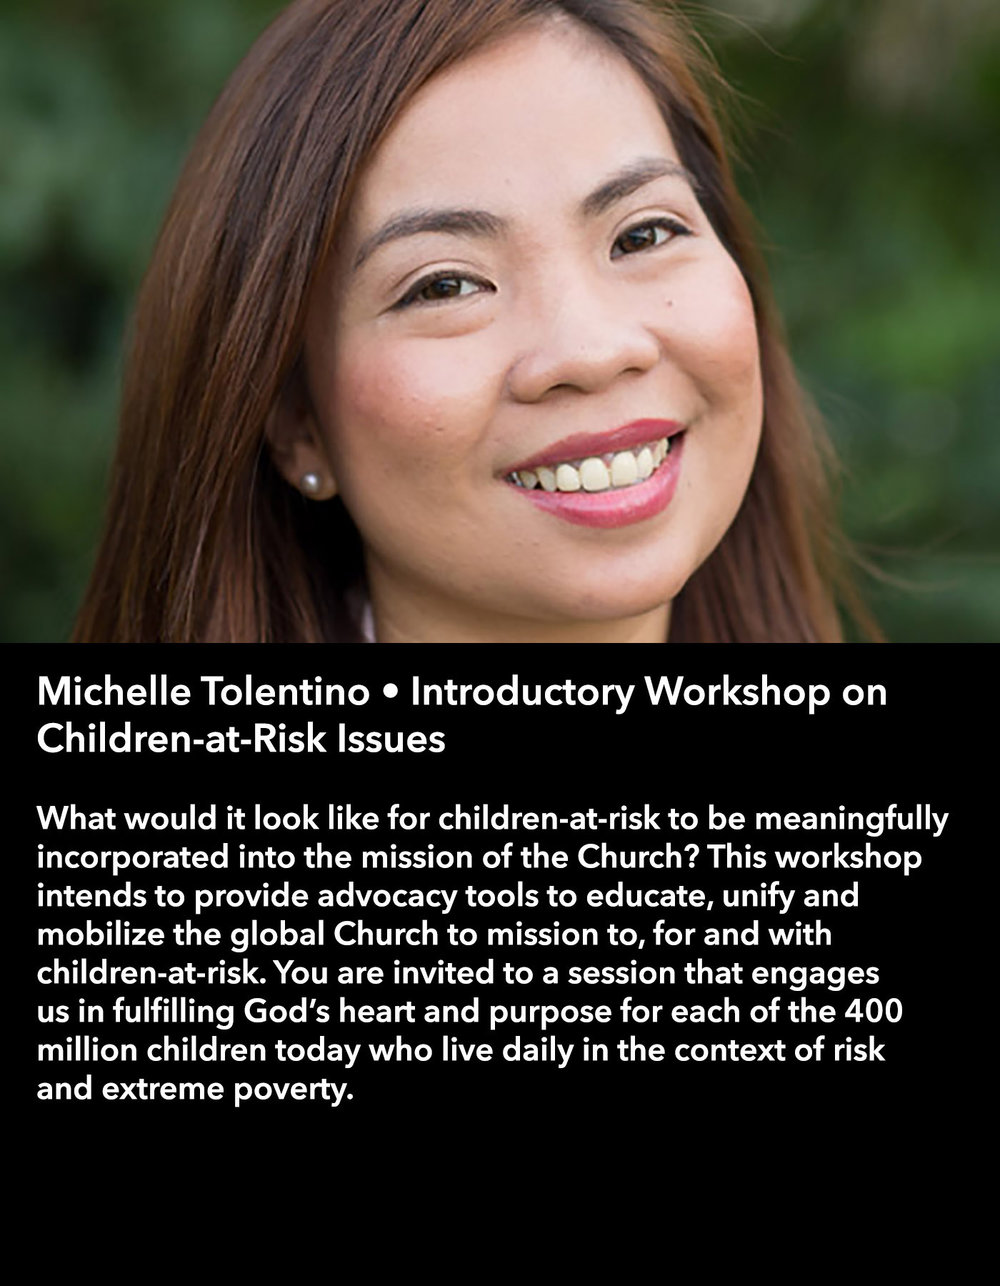 Michelle Tolentino • Introductory Workshop on Children-at-Risk Issues • Friday Afternoon, March 17 • 3:30 – 4:45 pm